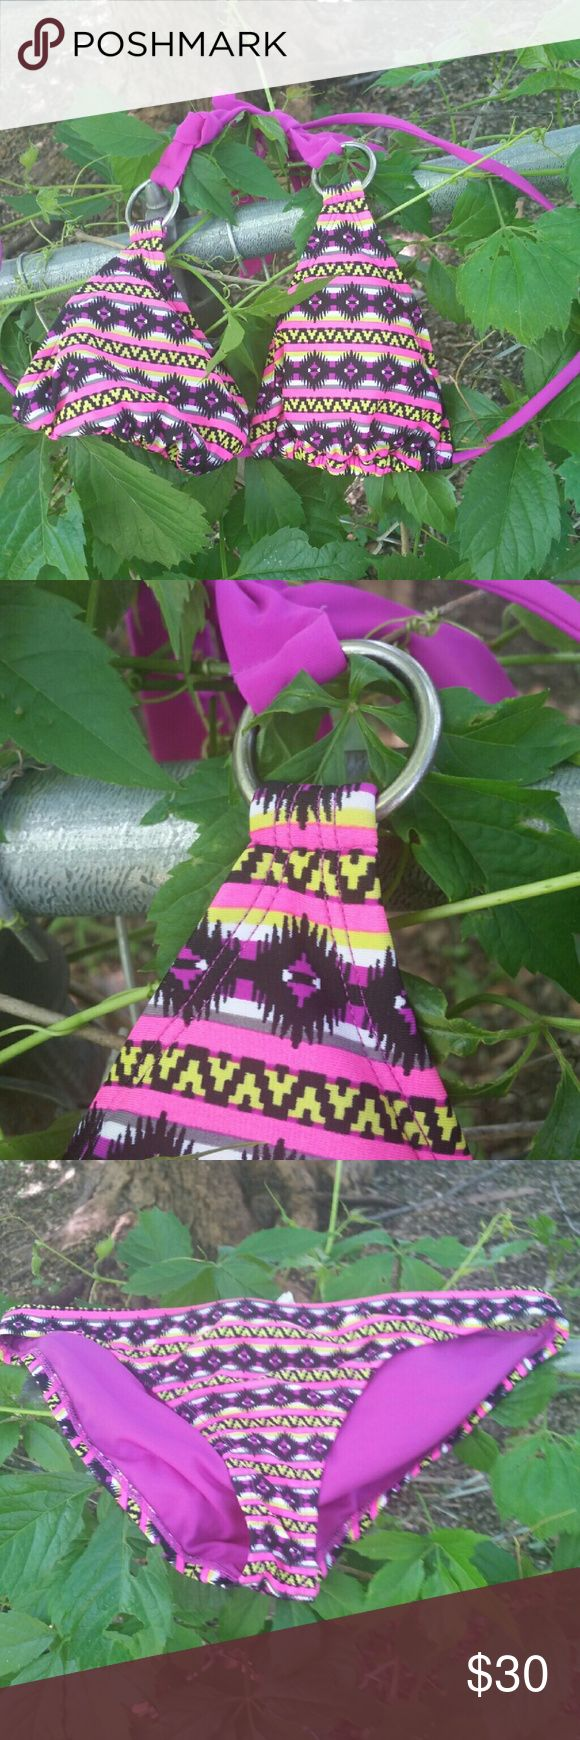 "Converse Aztec Bikini Set So cute! I wear my bathing suits for a few days during the year and then move them on... Shell is 82% nylon, 18% spandex. Lining 100% polyester.  🆓 Spend $10 or more from my closet, choose any item in my ""FREE Item"" listing as a special gift!!! 👍 Will bundle, just ask! 🚫 NO trades Converse Swim Bikinis"